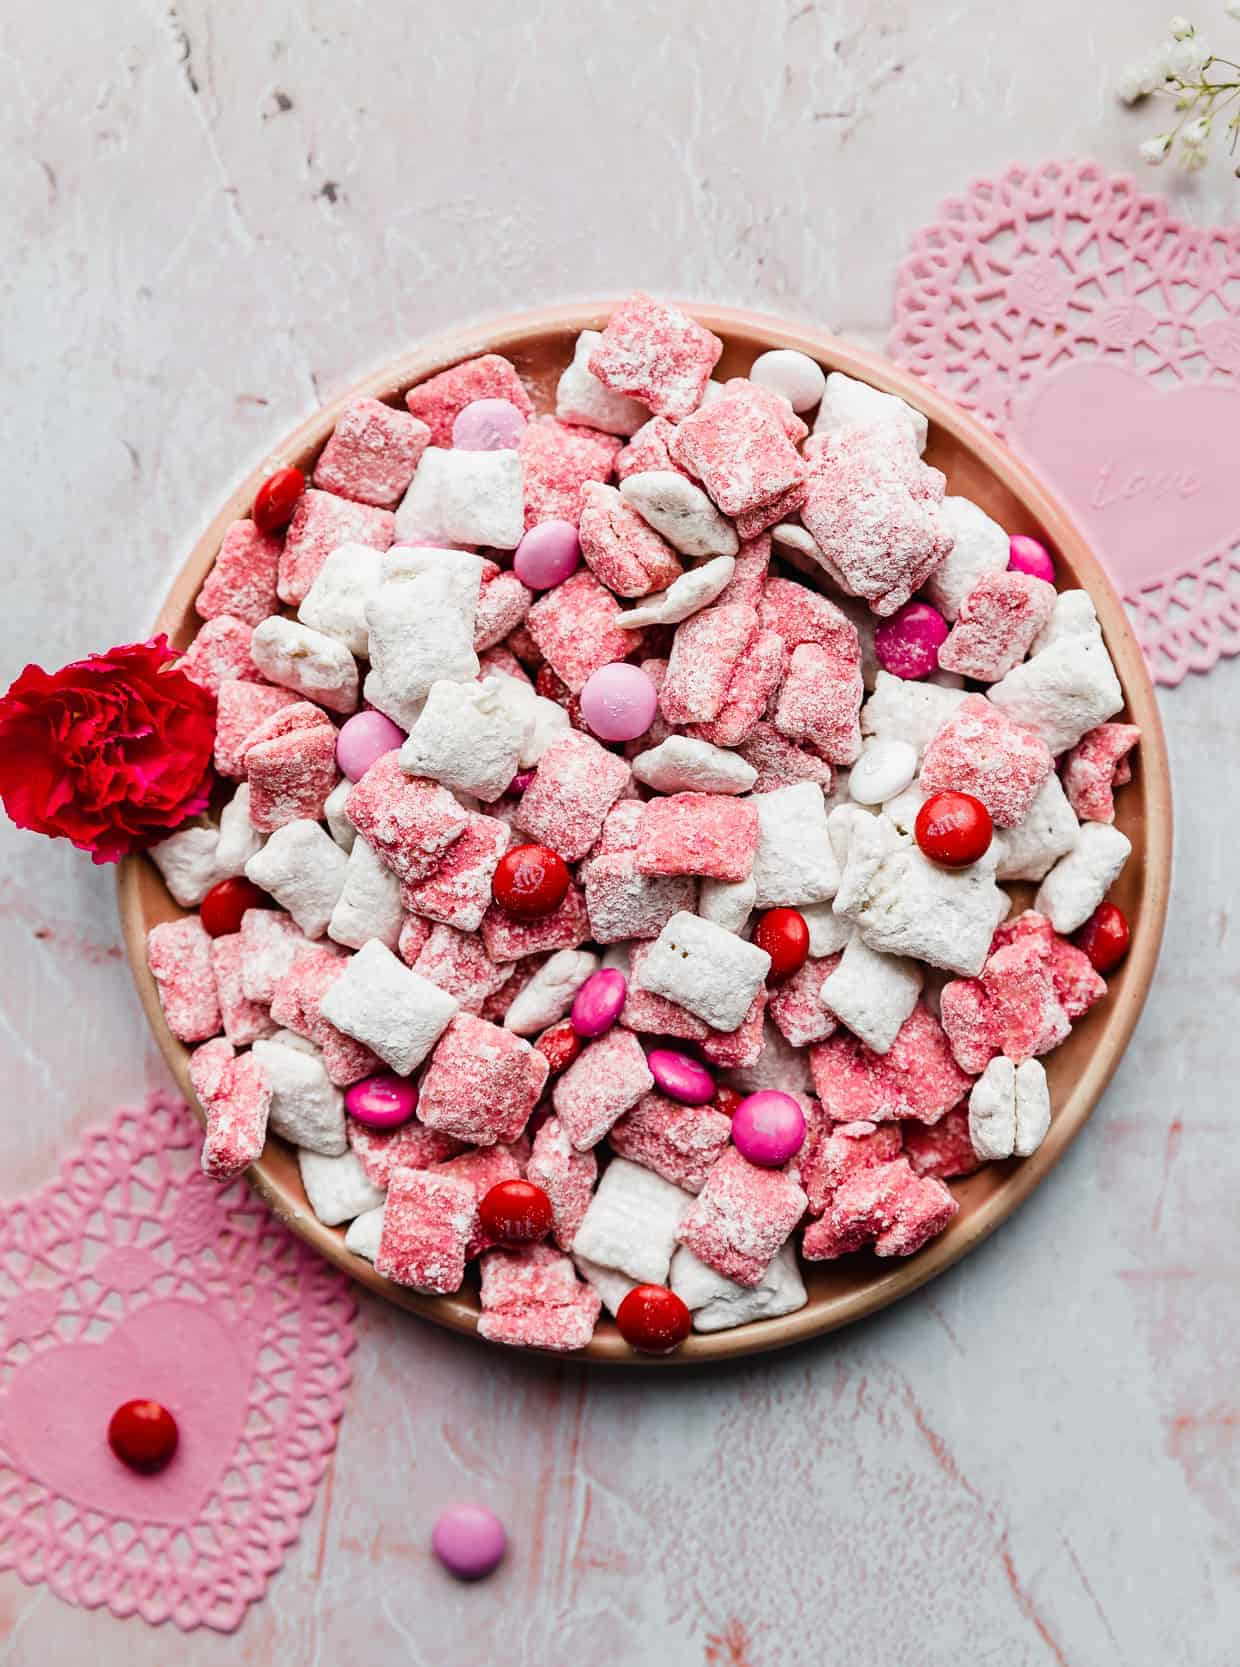 A plate of white and pink colored muddy buddies tossed with pink, red, and white M&M candy.